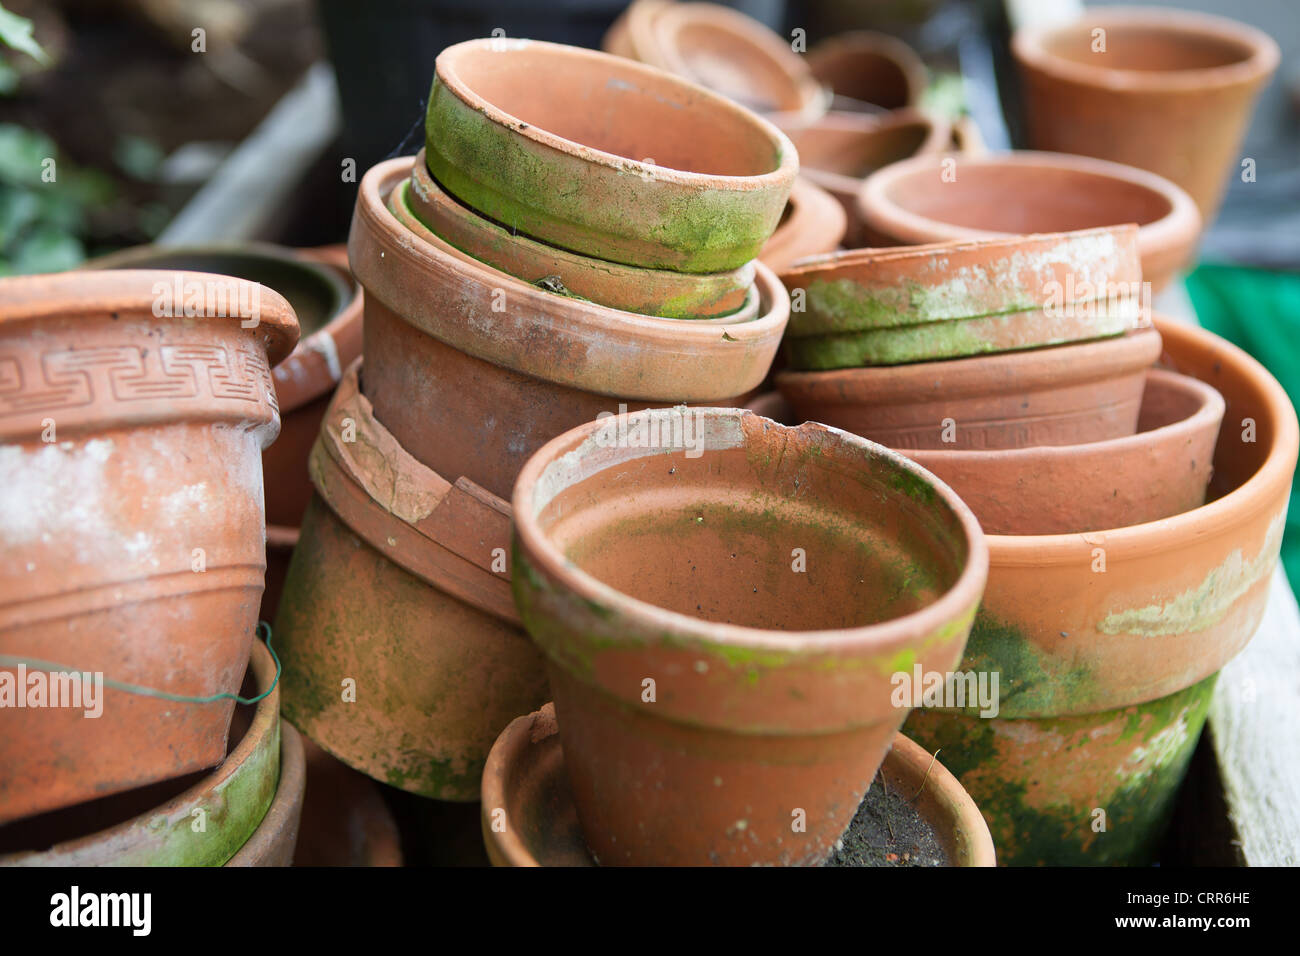 Teracota plant pots Unique Large Stack Of Old Terracotta Plant Pots For Gardening Ebay Large Stack Of Old Terracotta Plant Pots For Gardening Stock Photo